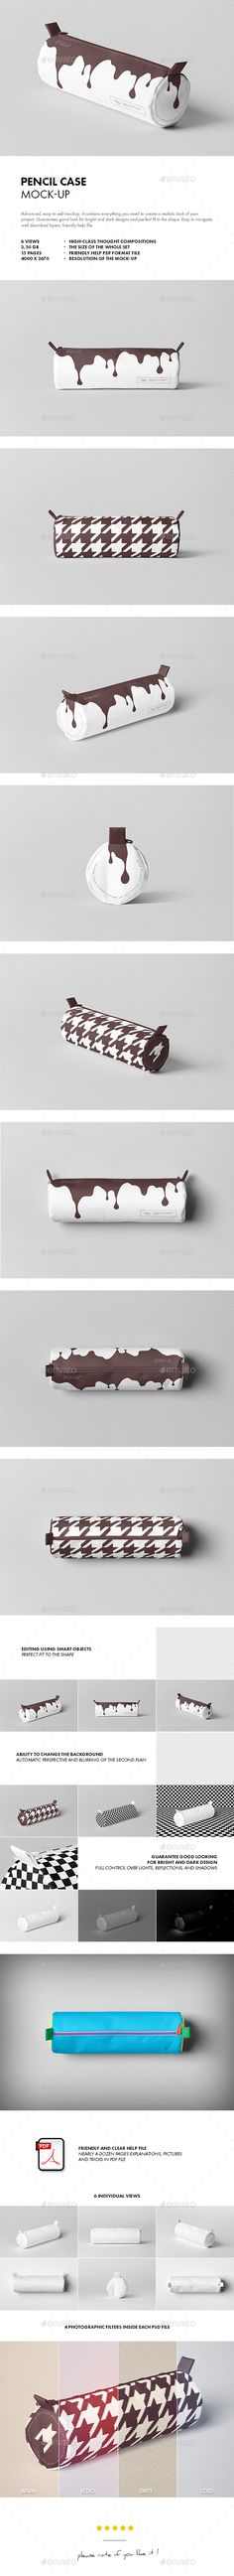 Pencil Case Mock-up - Miscellaneous Product Mock-Ups